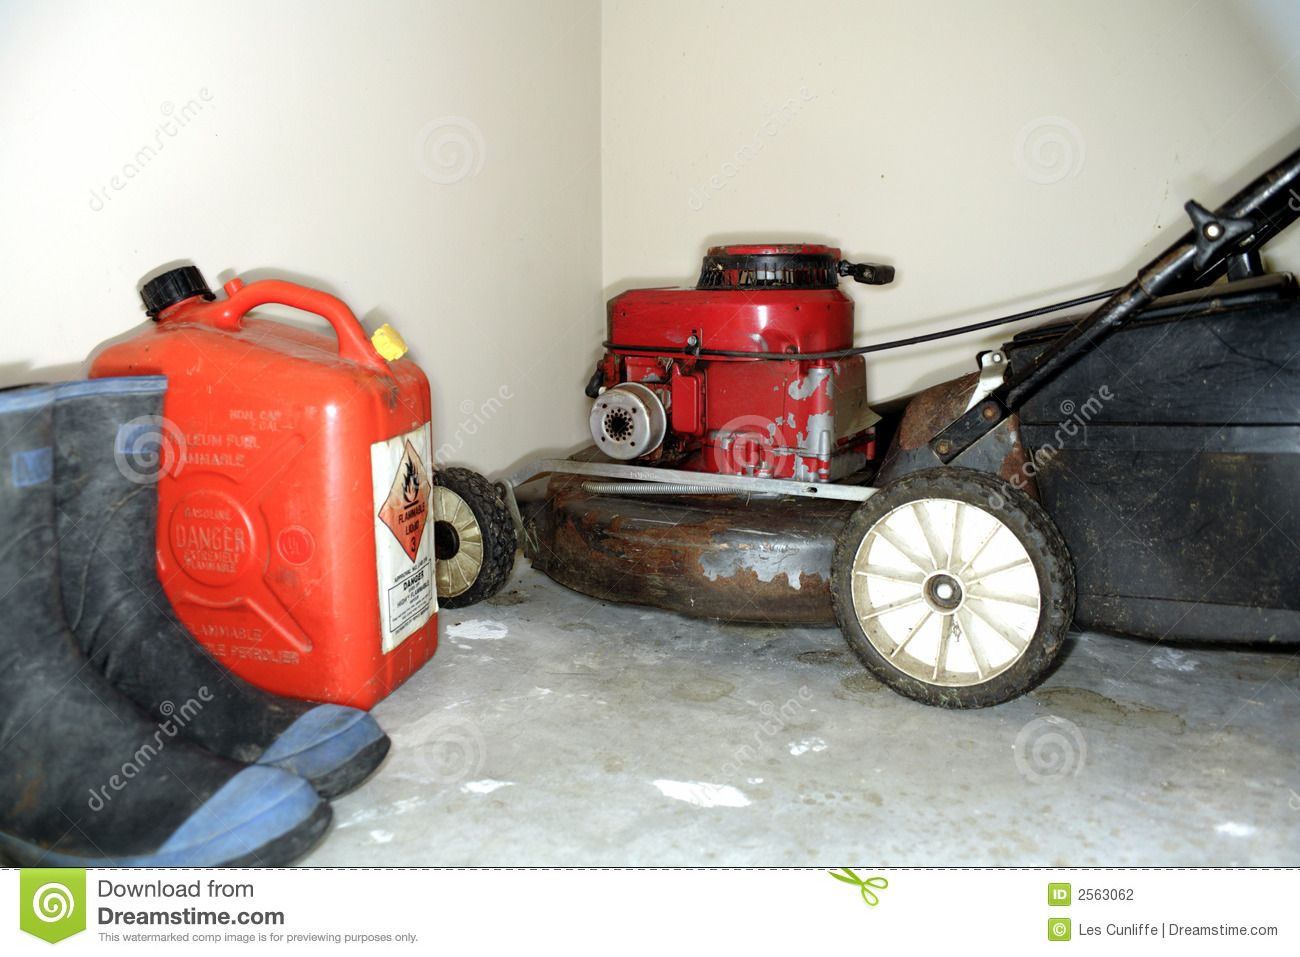 Lawnmower and gas can